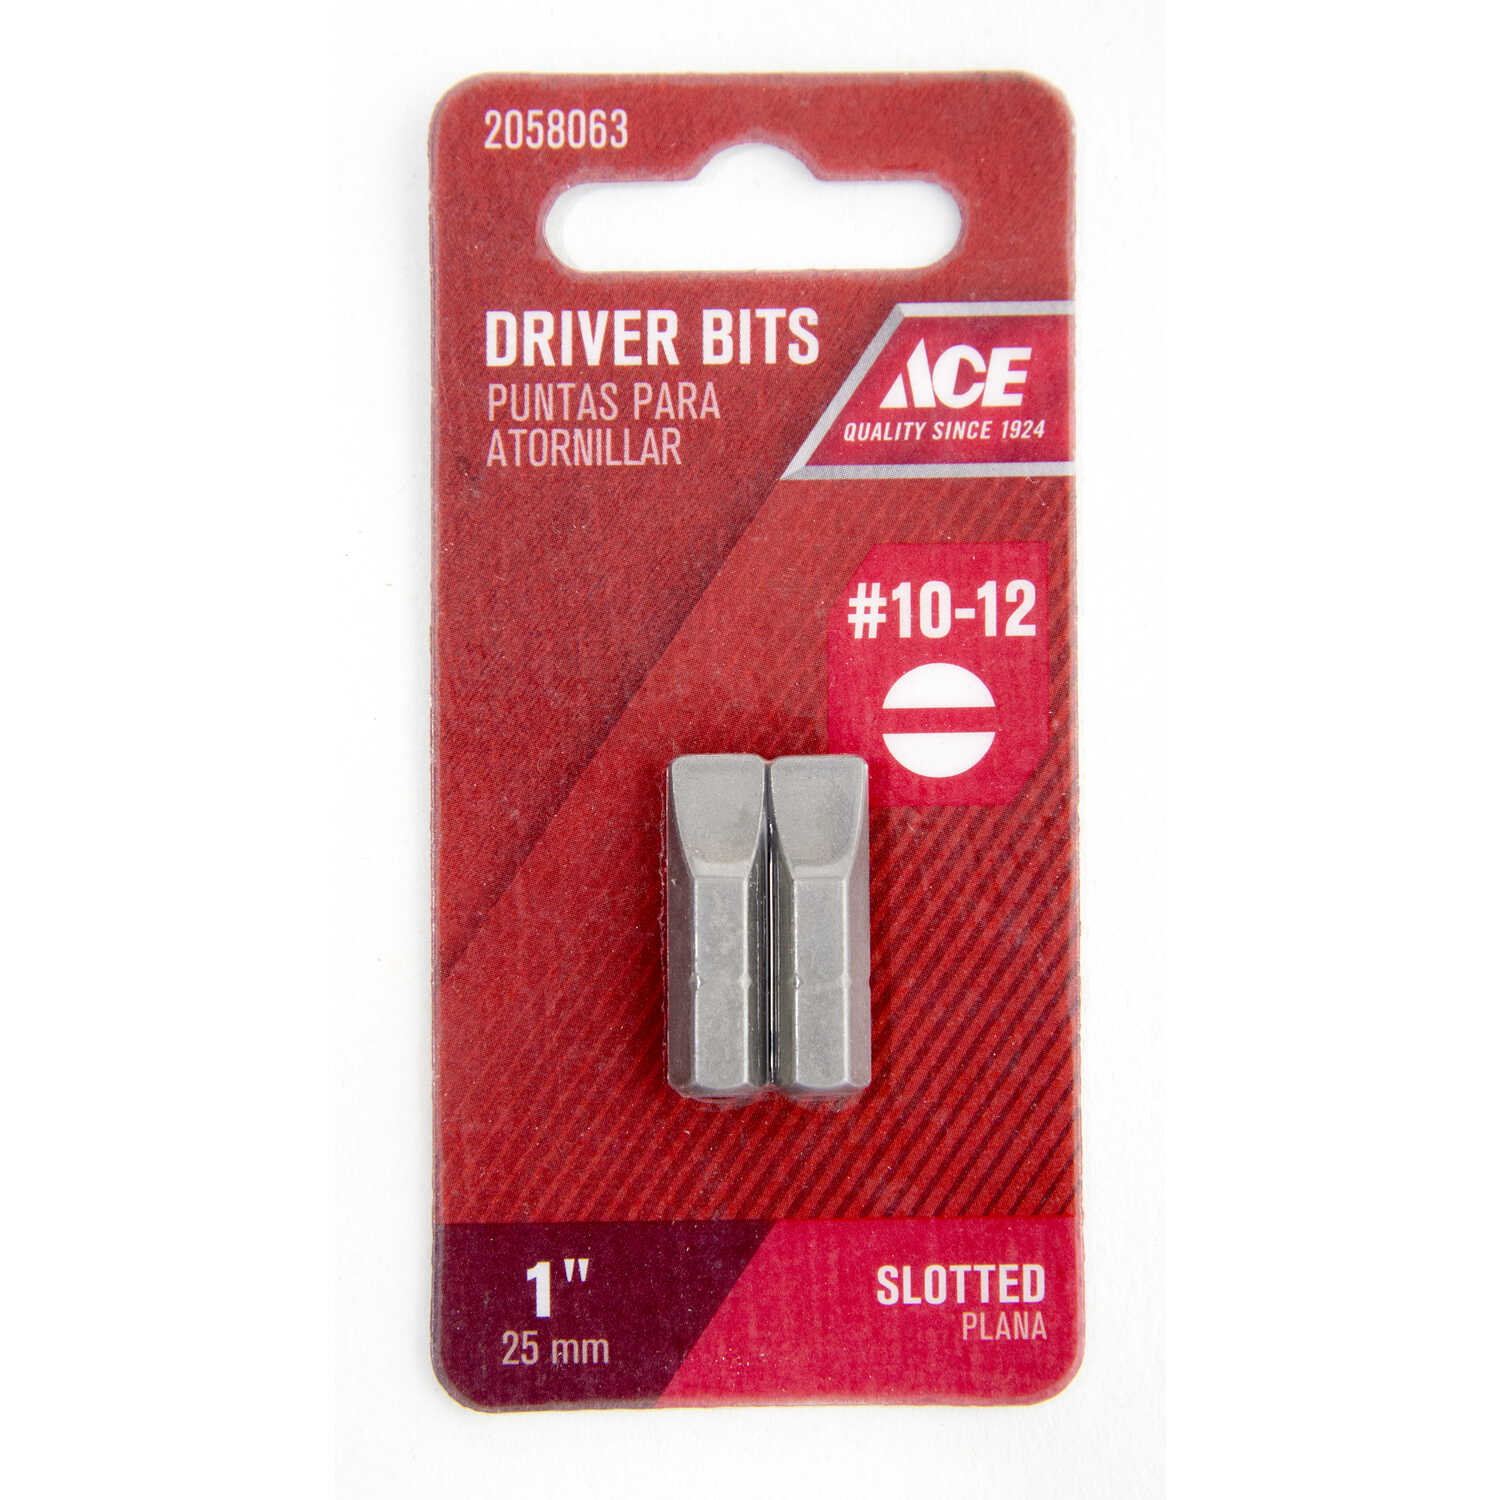 Ace  #10-12   x 1 in. L Insert Bit  Slotted  2 pc. 1/4 in. S2 Tool Steel  Hex Shank